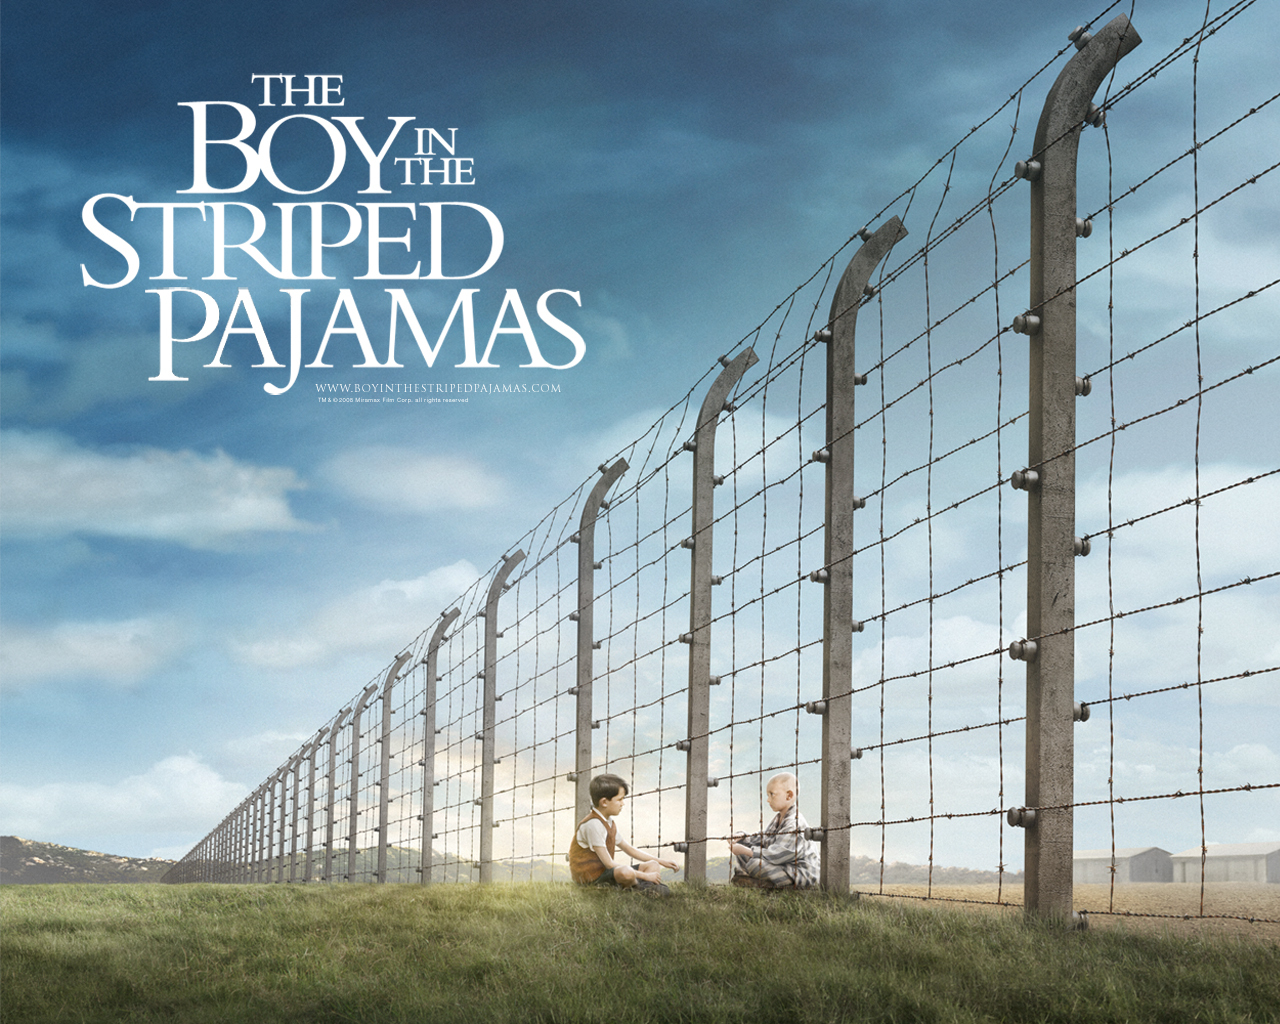 the boy in the striped pajamas Find great deals on ebay for the boy in the striped pyjamas and the boy in the striped pajamas shop with confidence.